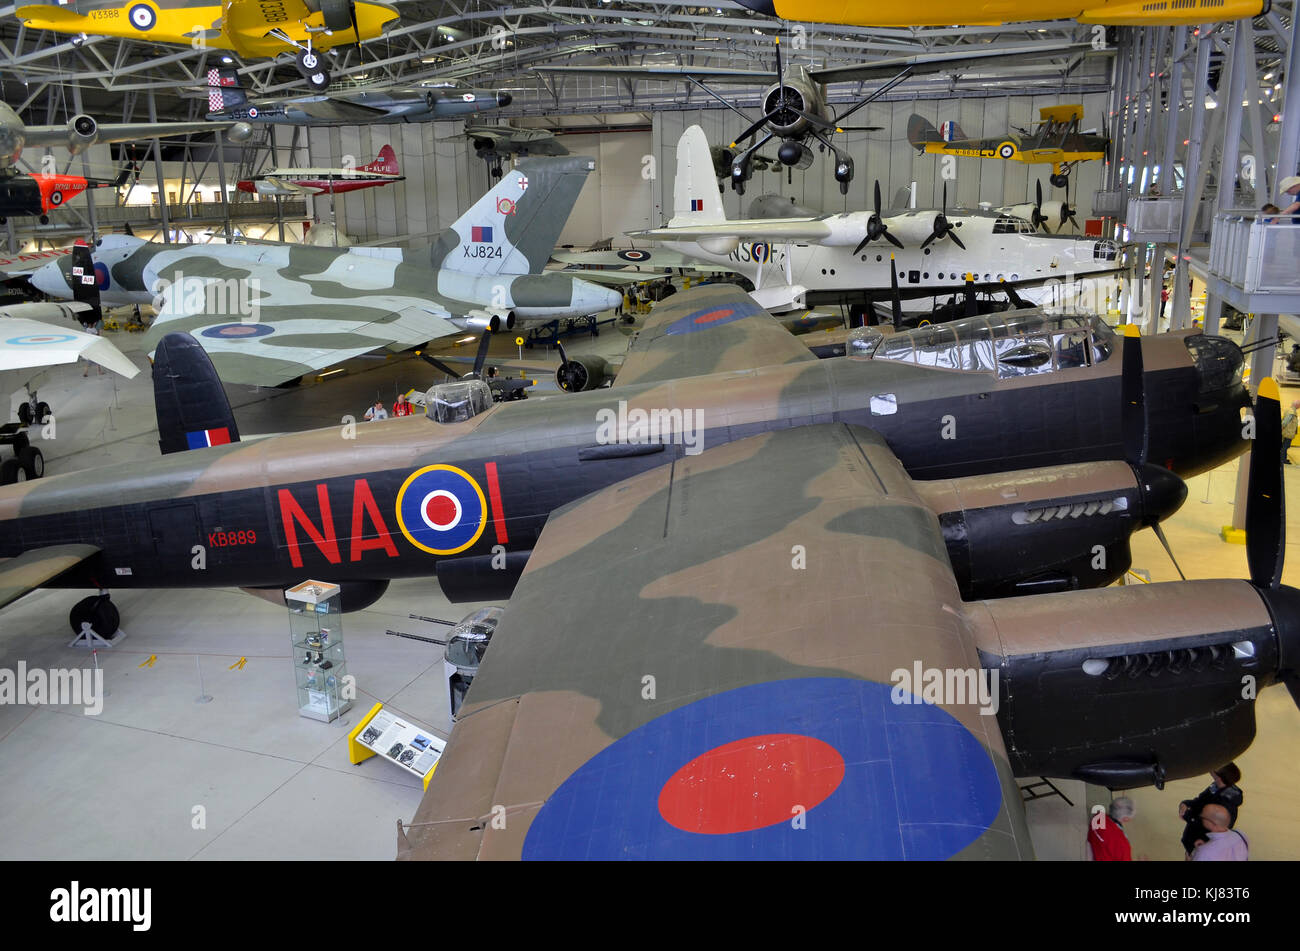 Duxford Airspace aviation museum, Duxford, UK. Overview with Avro lancaster in foreground. - Stock Image